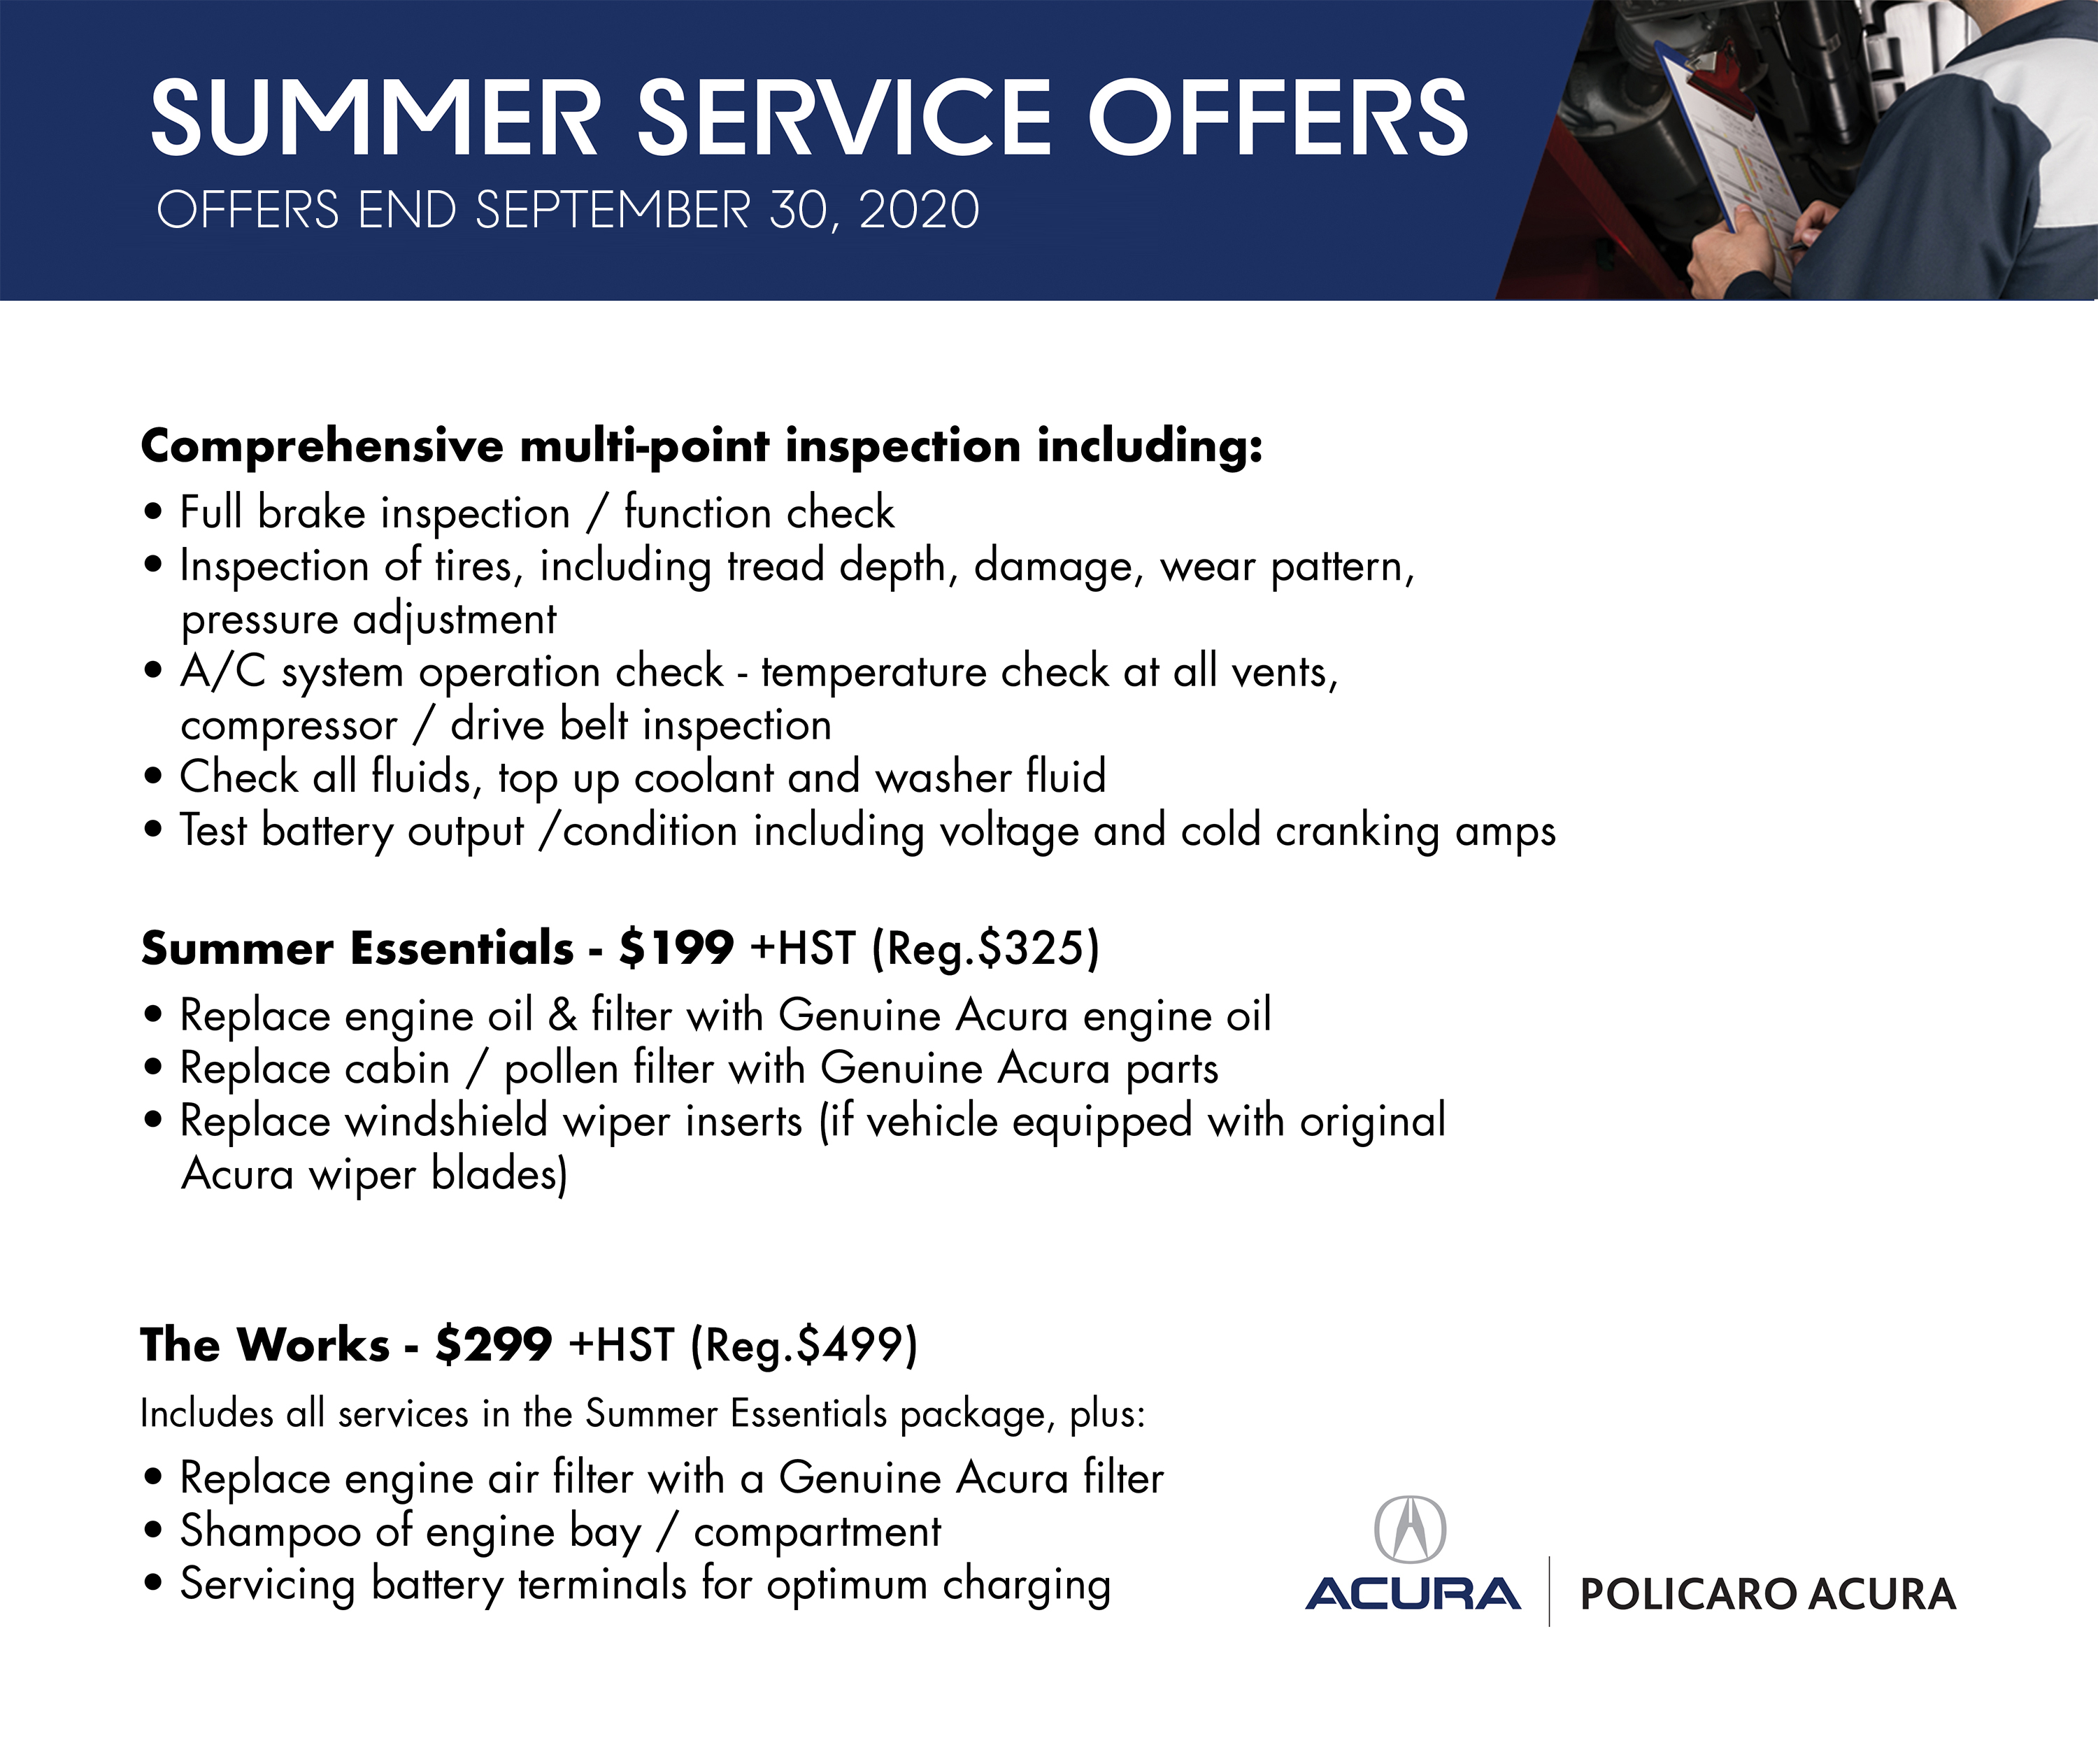 PA-Service-Offer-Packages-Sept2020